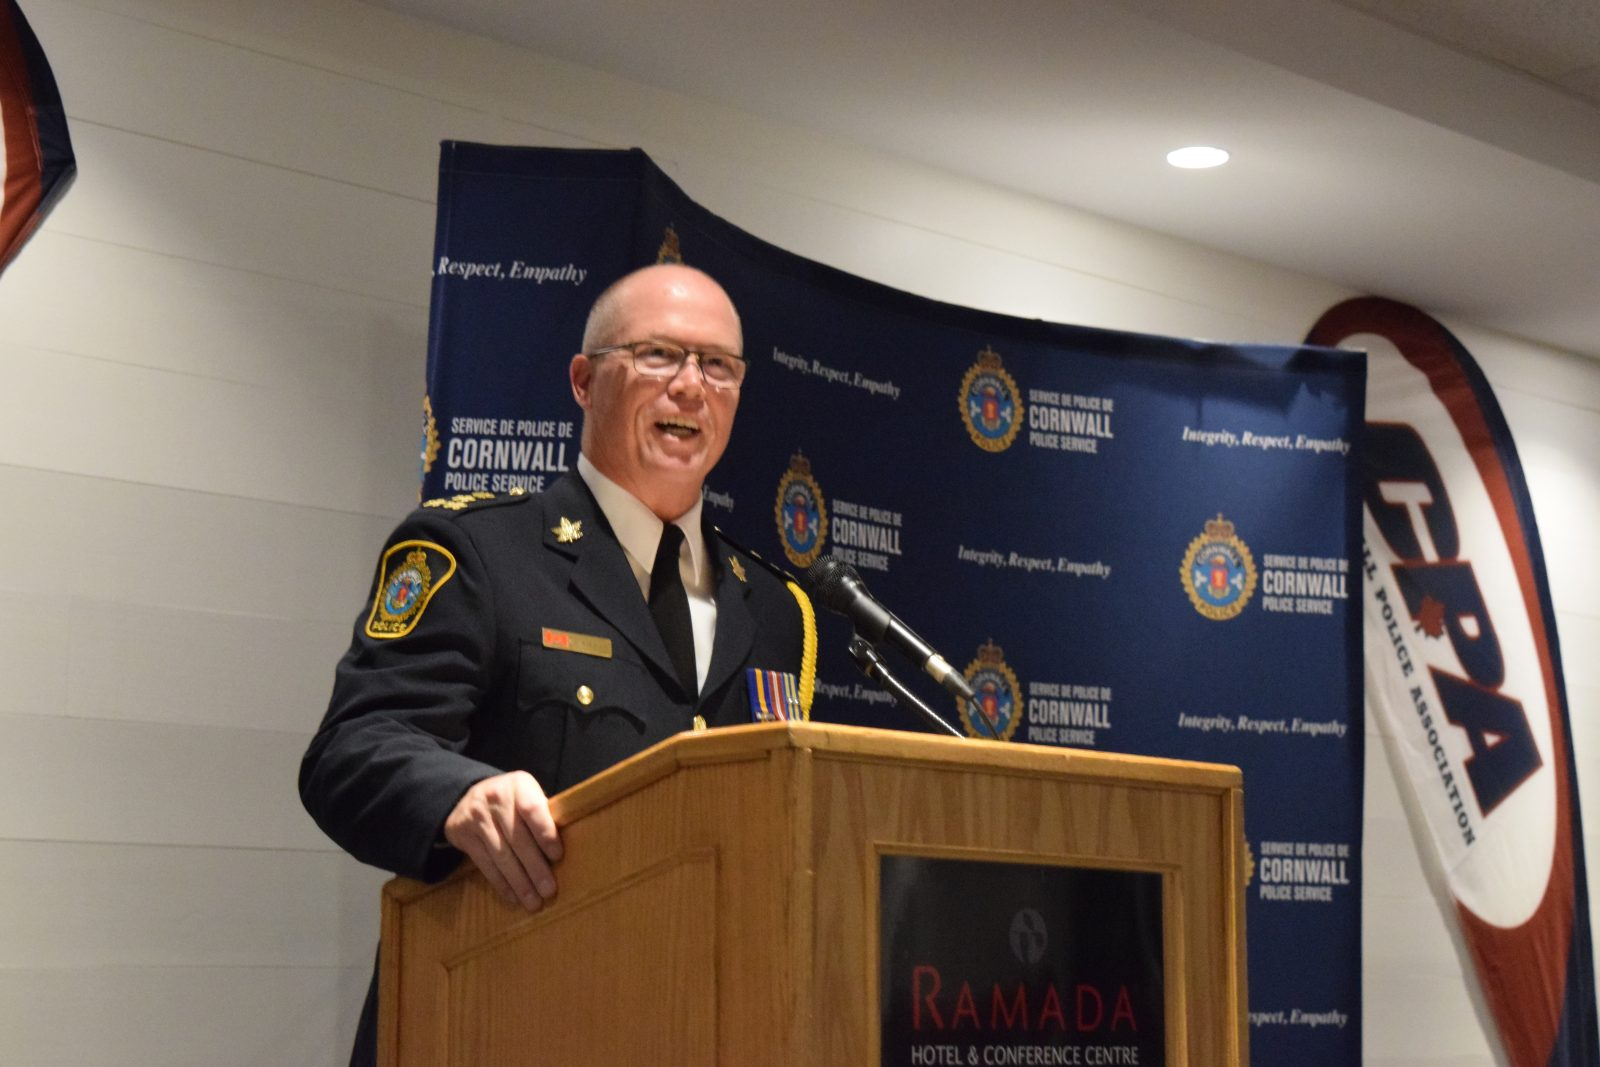 Recognizing service at 25th annual police awards